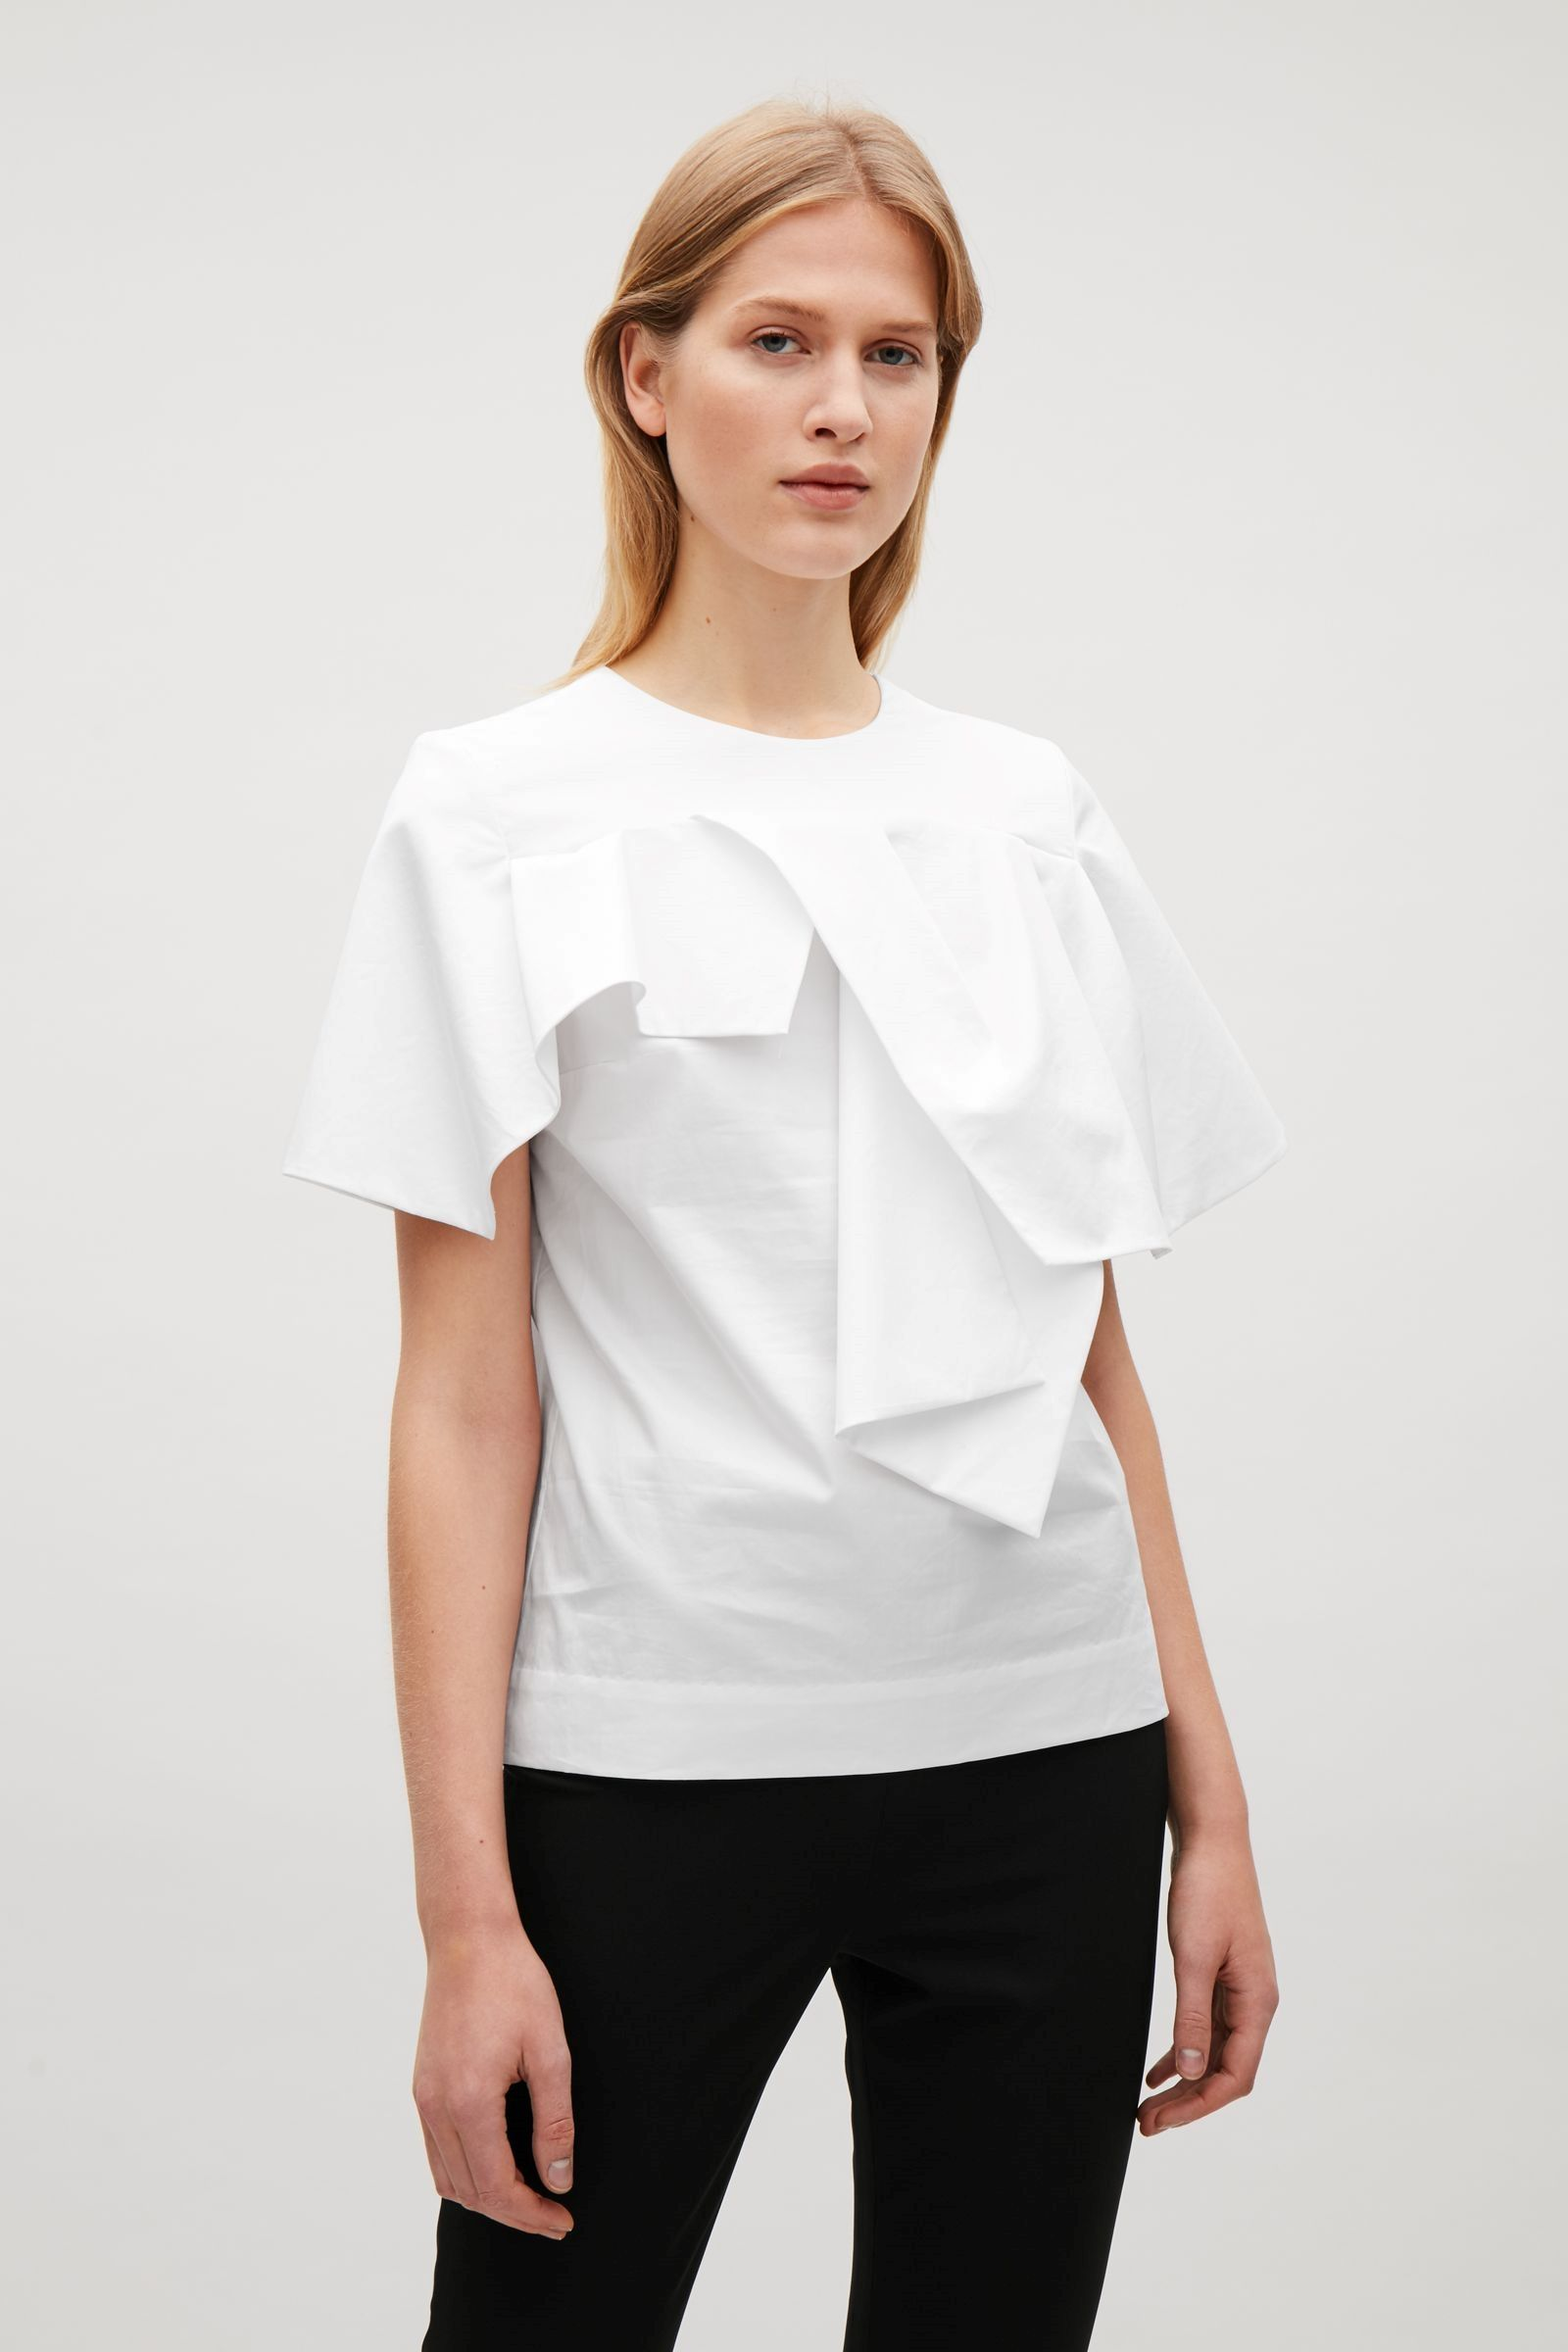 Top Of In Pinterest White Cloth Cos Draped 2 Image With Sleeves CqS47fw